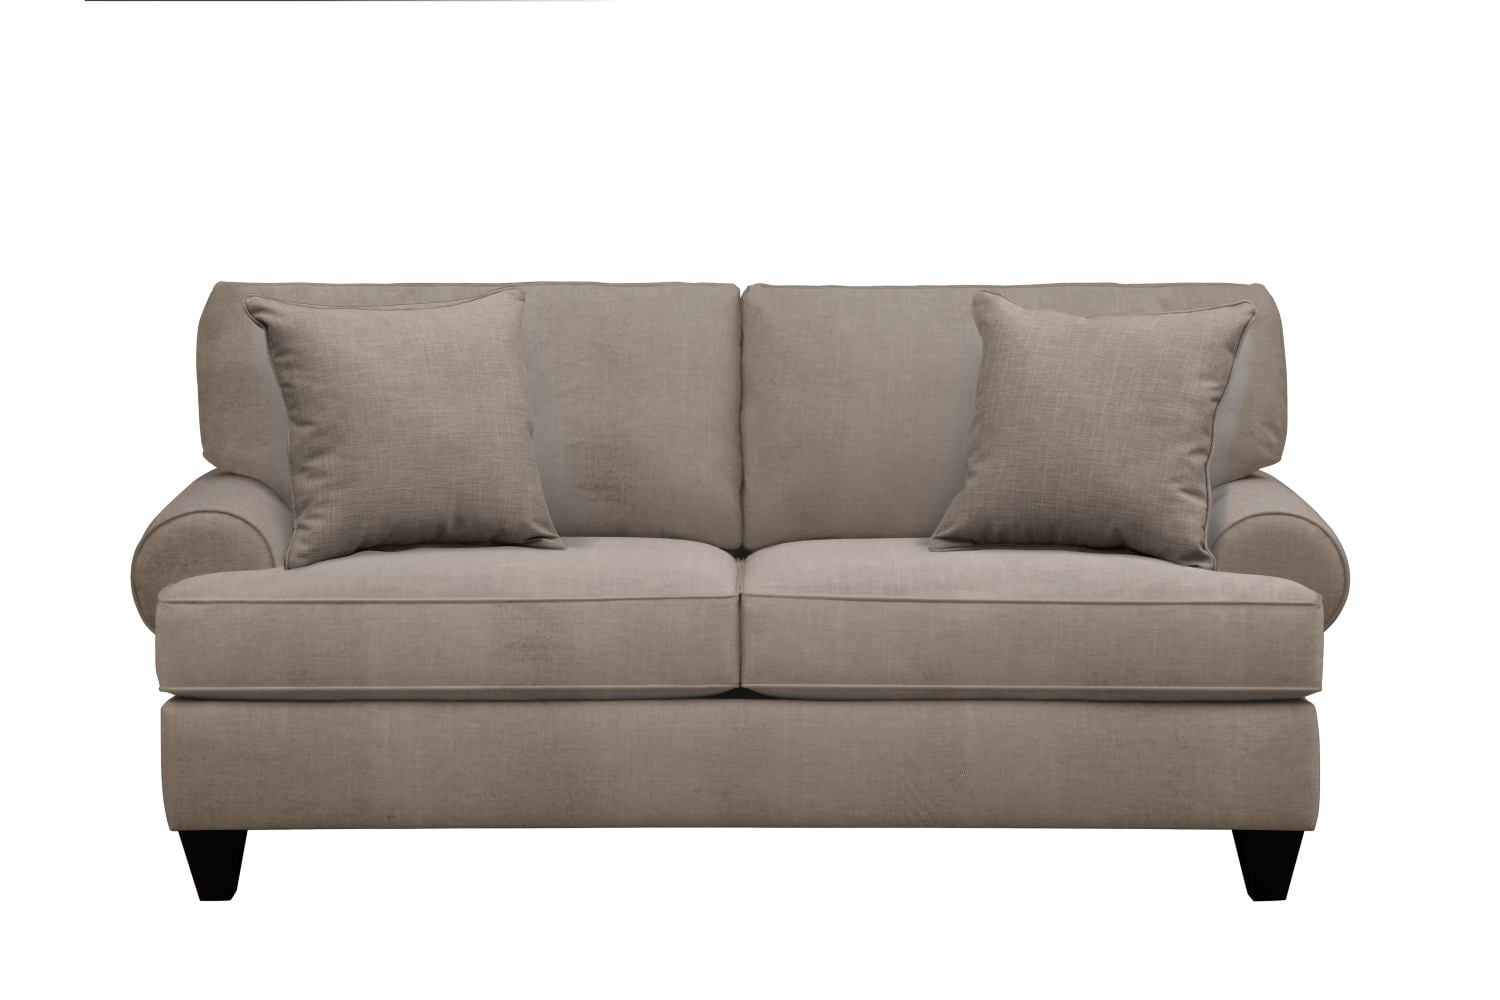 "Living Room Furniture - Bailey Roll Arm Sofa 79"" Oakley III Granite w/ Oakley III Granite Pillow"